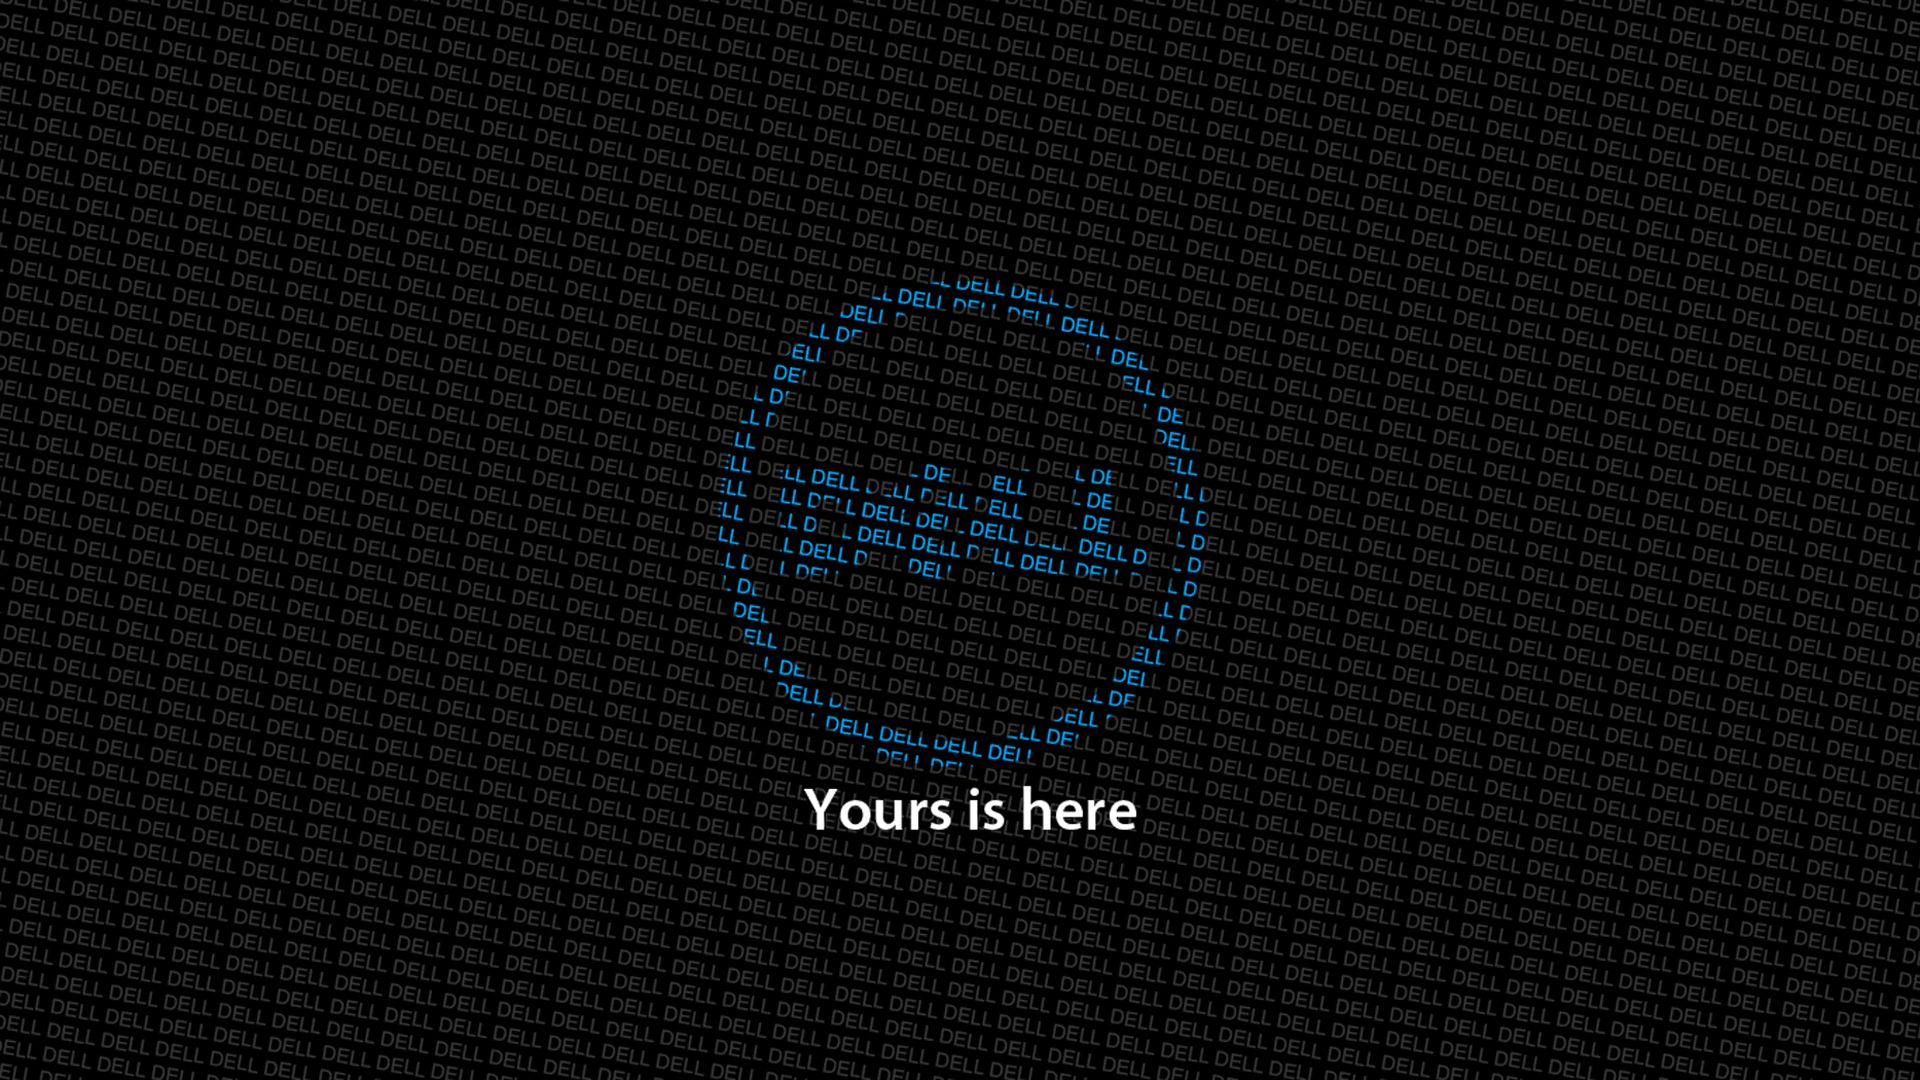 Dell Hd Wallpapers Free Wallpaper Downloads Dell Hd Desktop Black Wallpaper Iphone Hd Wallpapers For Laptop Dell Laptops